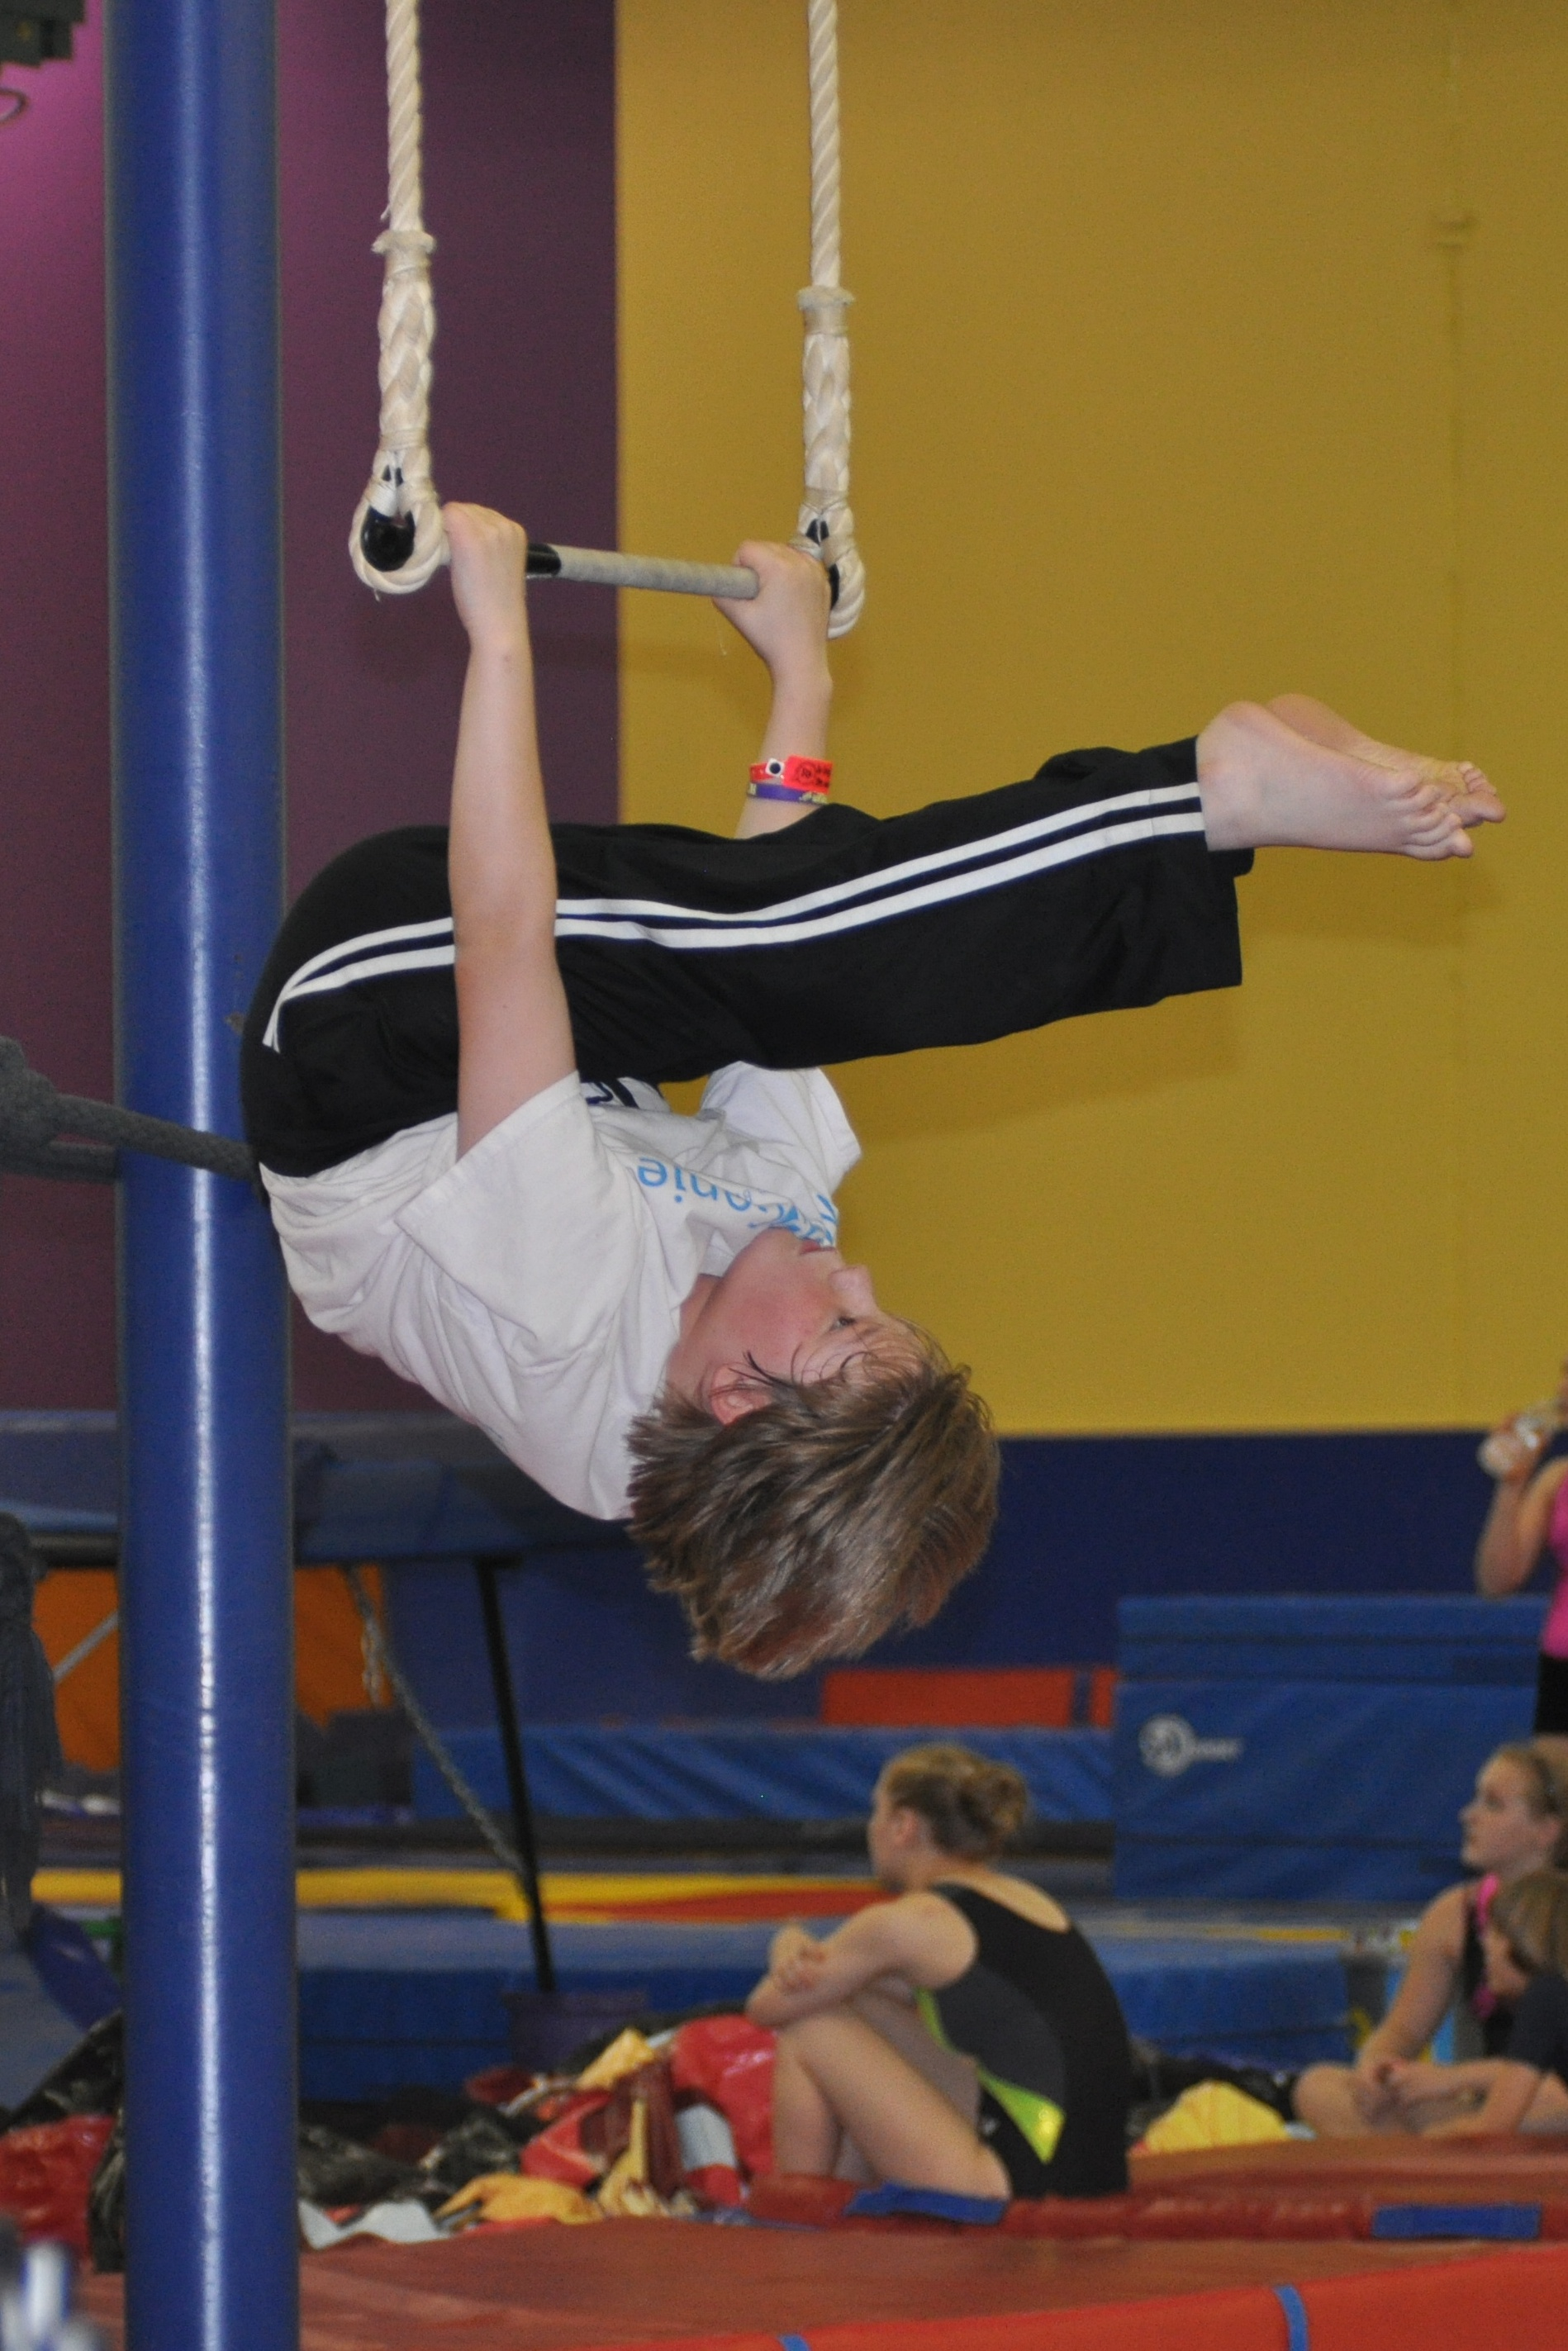 kameron-on-trapeze-perfect-pike-form-10_